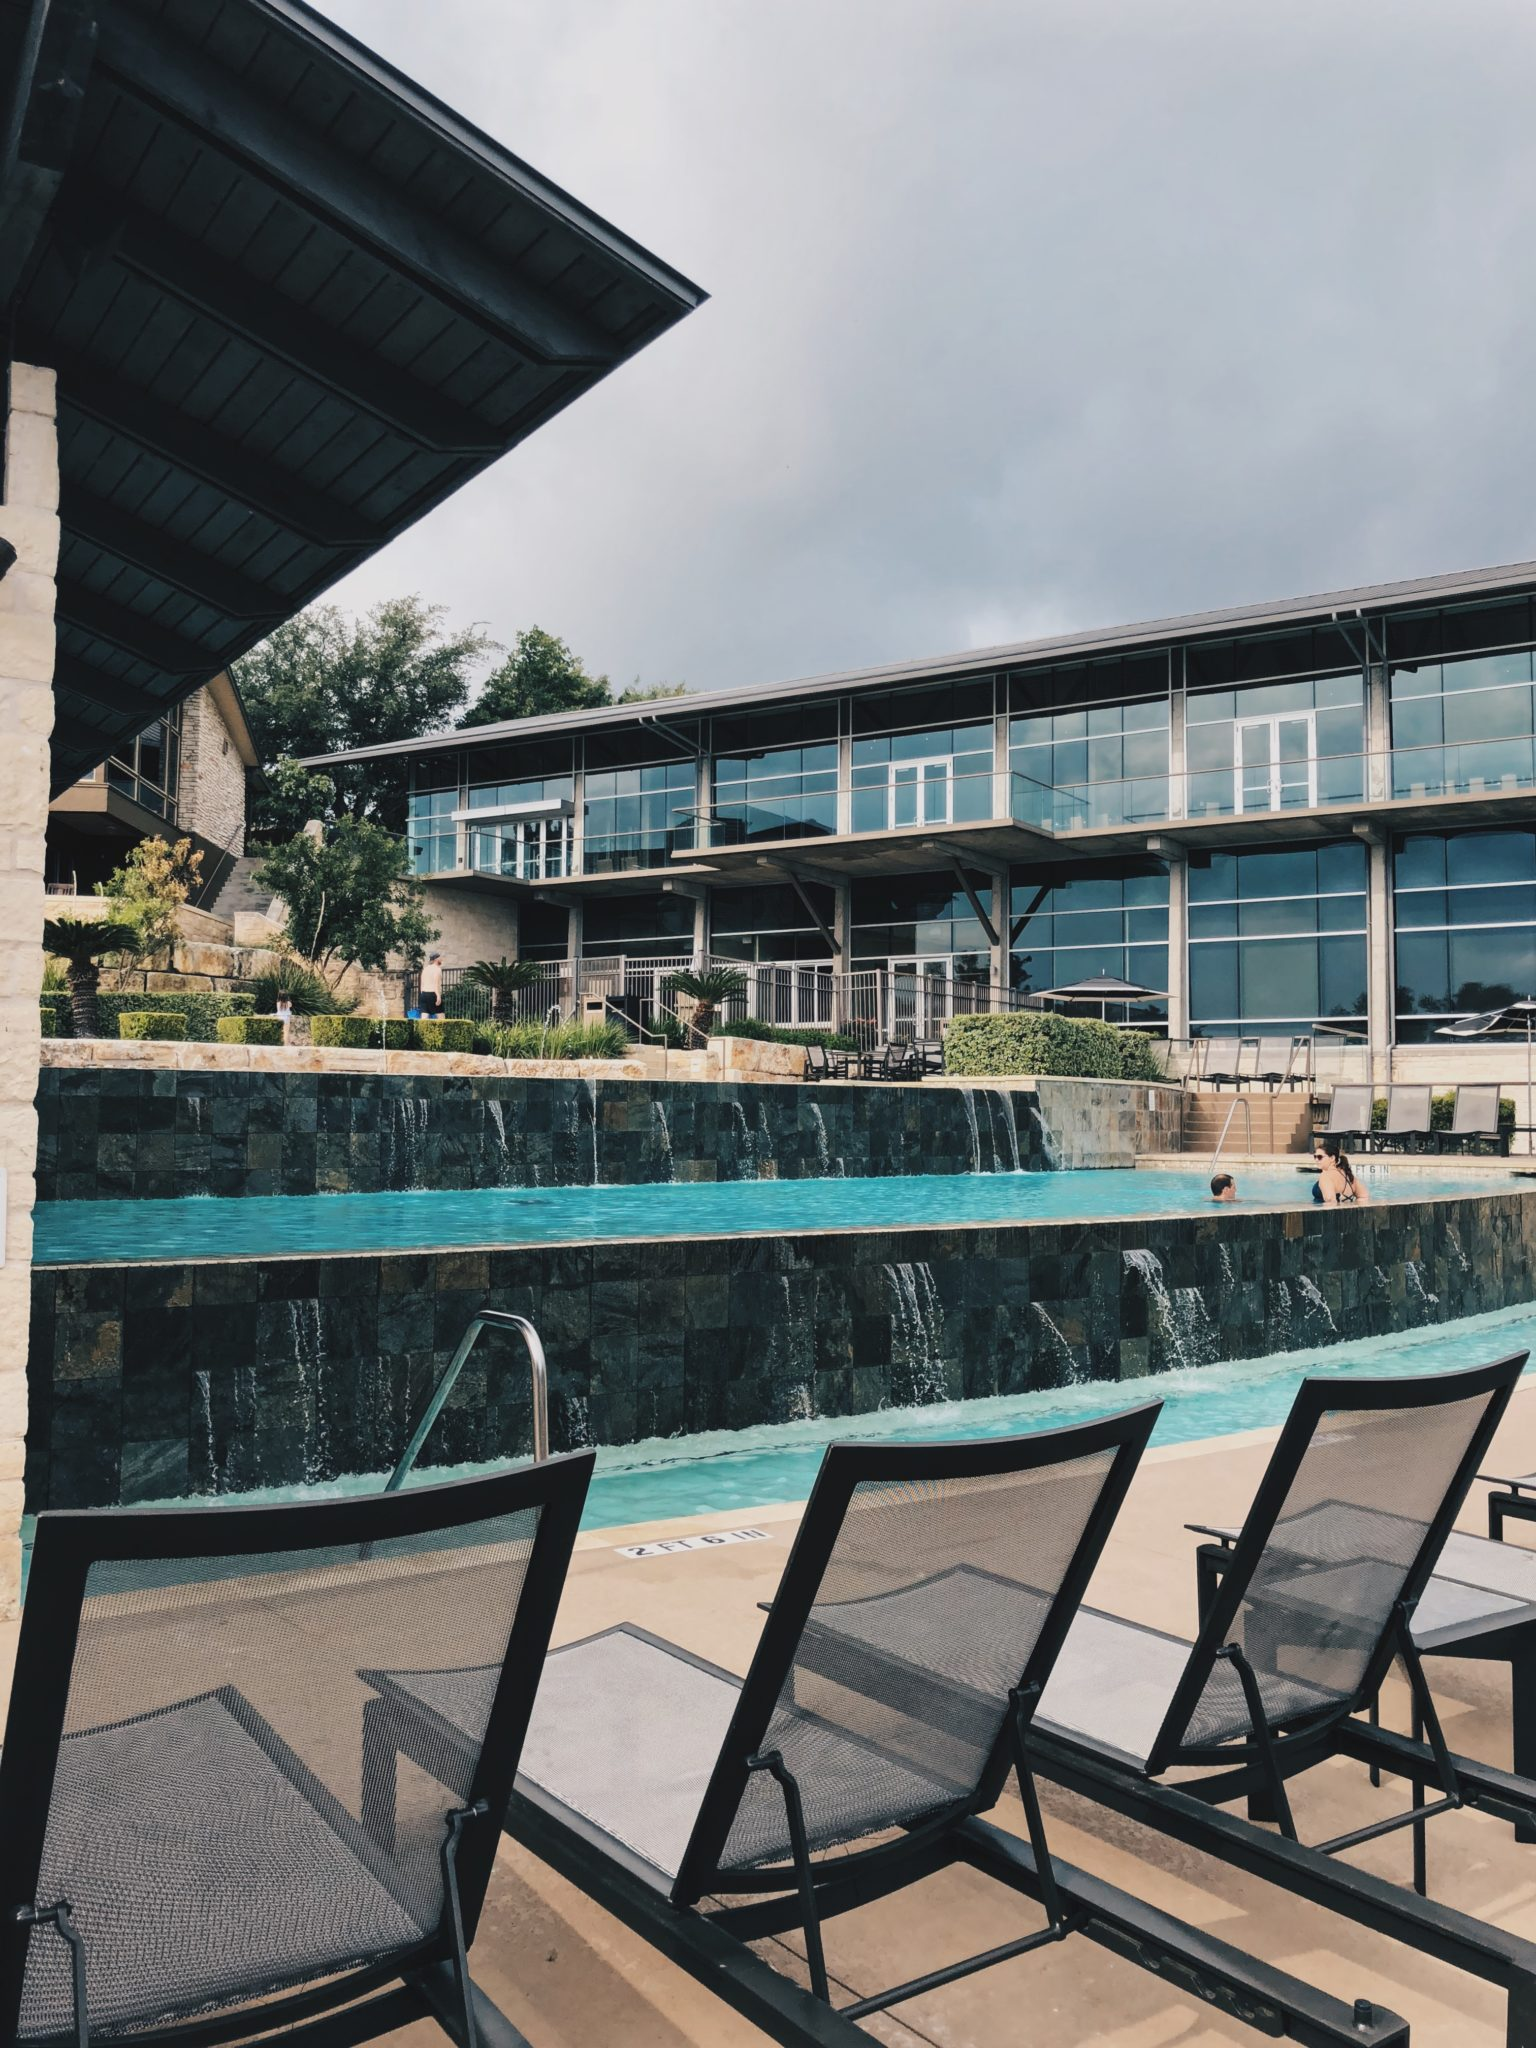 DTKAustin shares where the best vacation and staycation spot near Austin is; the Lakeway Resort & Spa. | Austin travel tips | staycation ideas near Austin Texas | Austin travel ideas | where to stay near Austin Texas || DTK Austin #austintexas #austintravel #lakewayresort #texastravel #staycation - {Best Staycation Near Austin - Lakeway Resort & Spa} by popular Austin blogger, Dressed to Kill